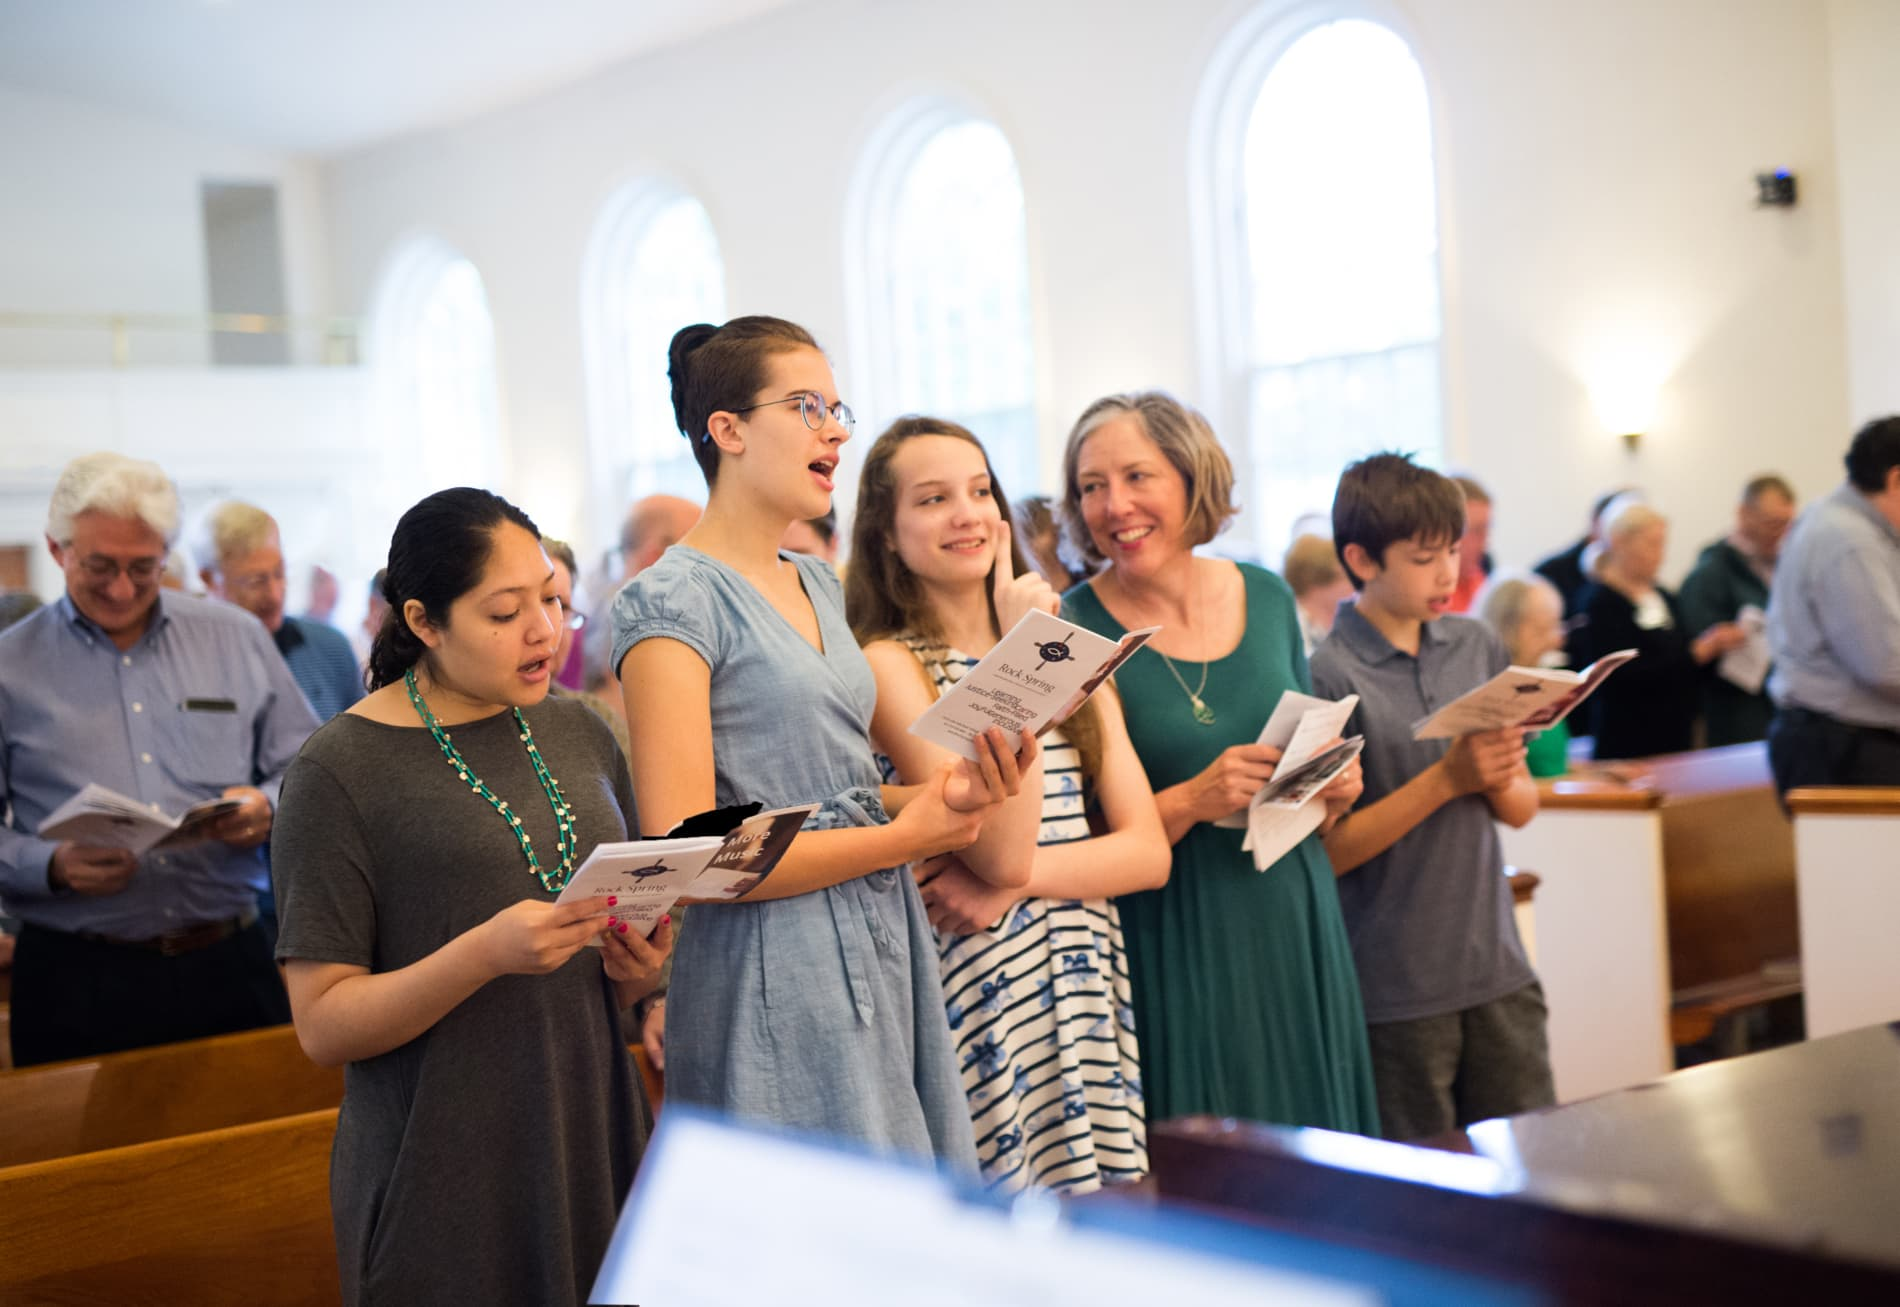 A group of people singing in church